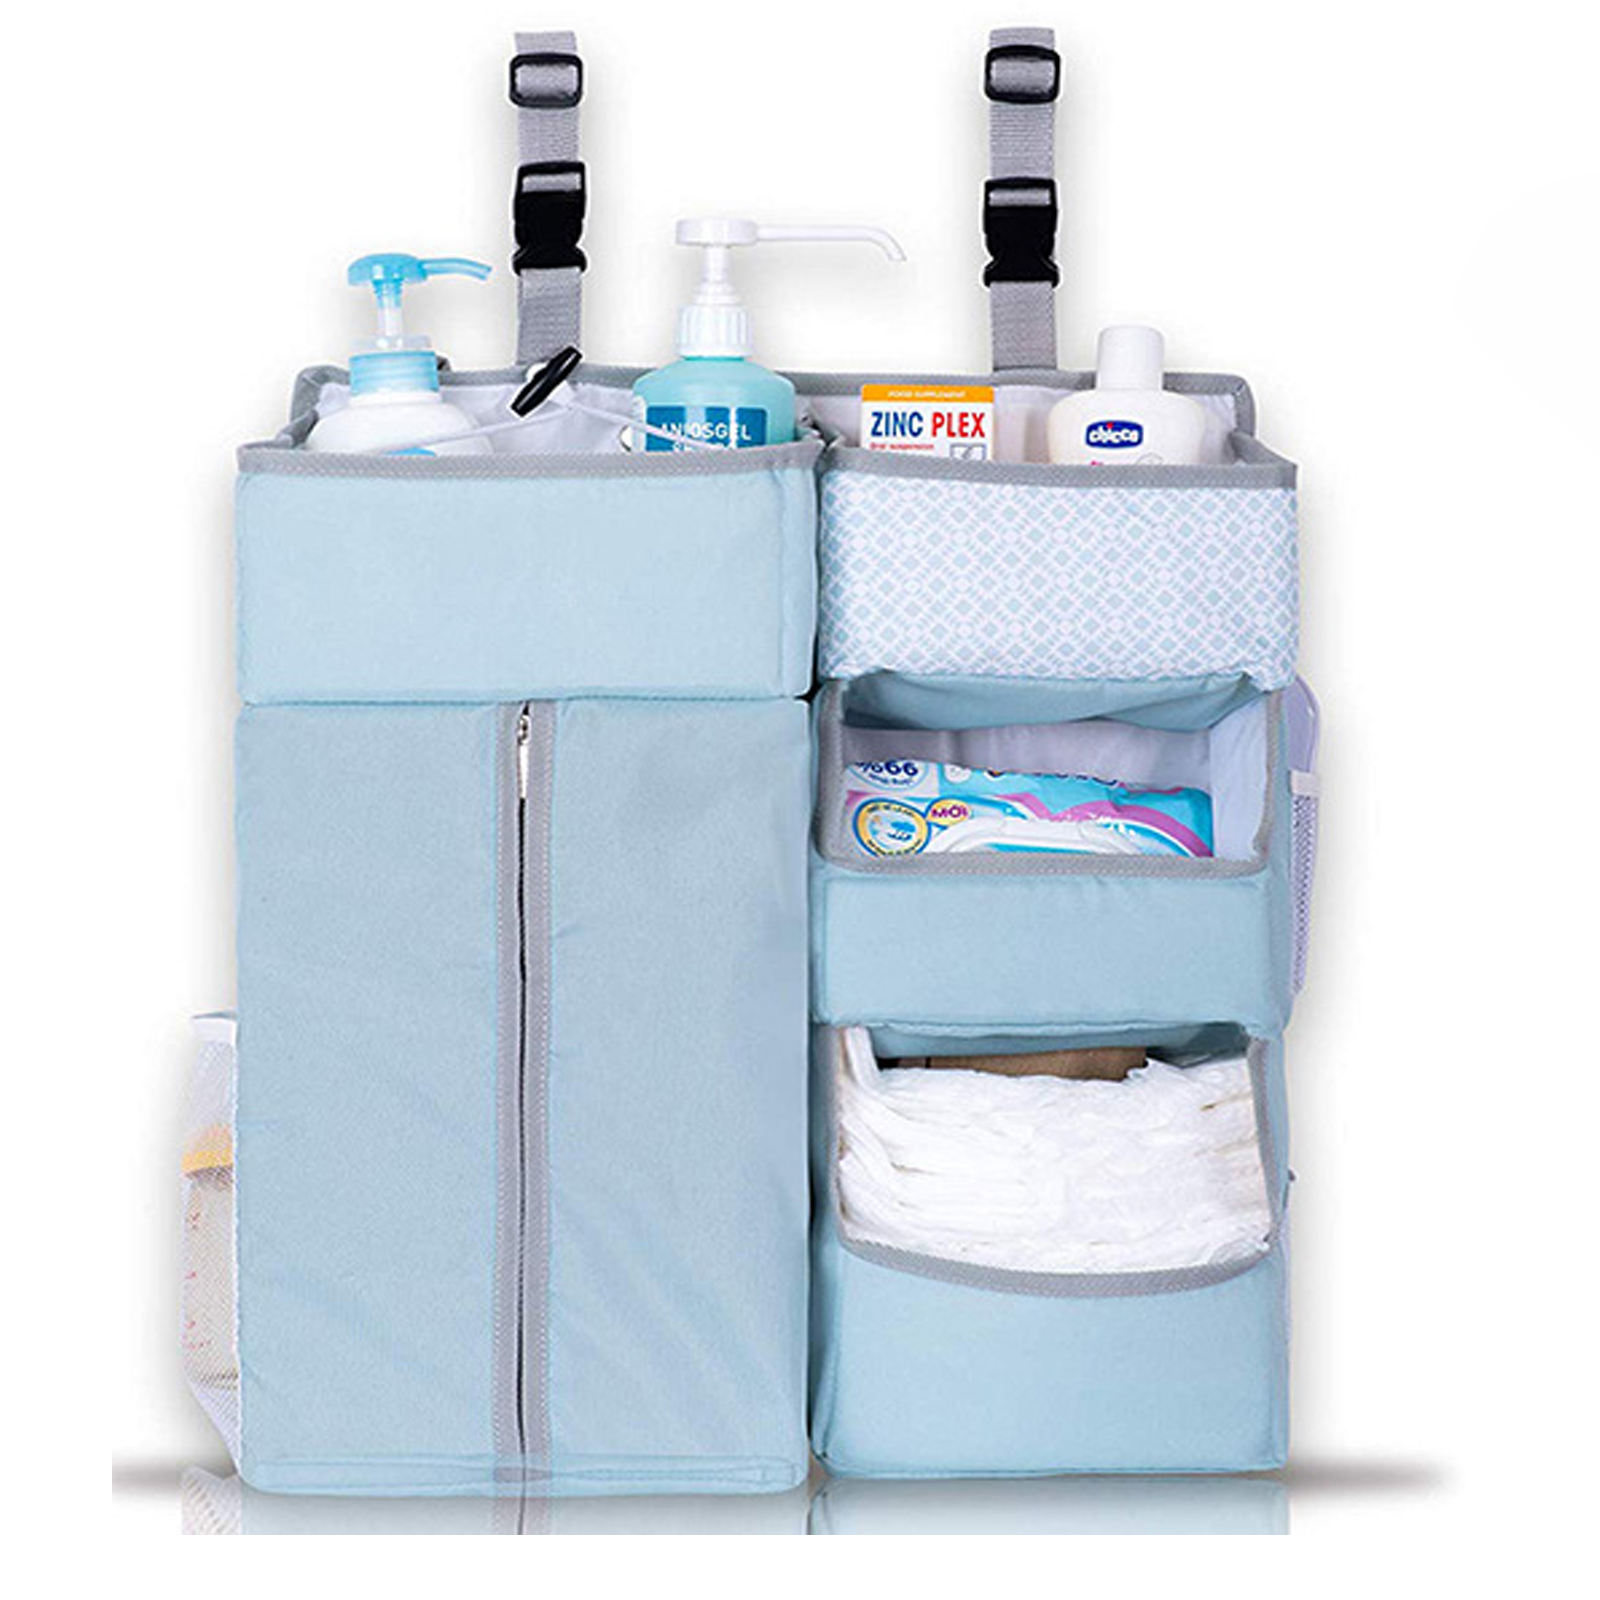 Hanging Diaper Caddy Organizer Diaper Organizer for Changing Table Crib Hanging Organizer Large Capacity Nursery Organization